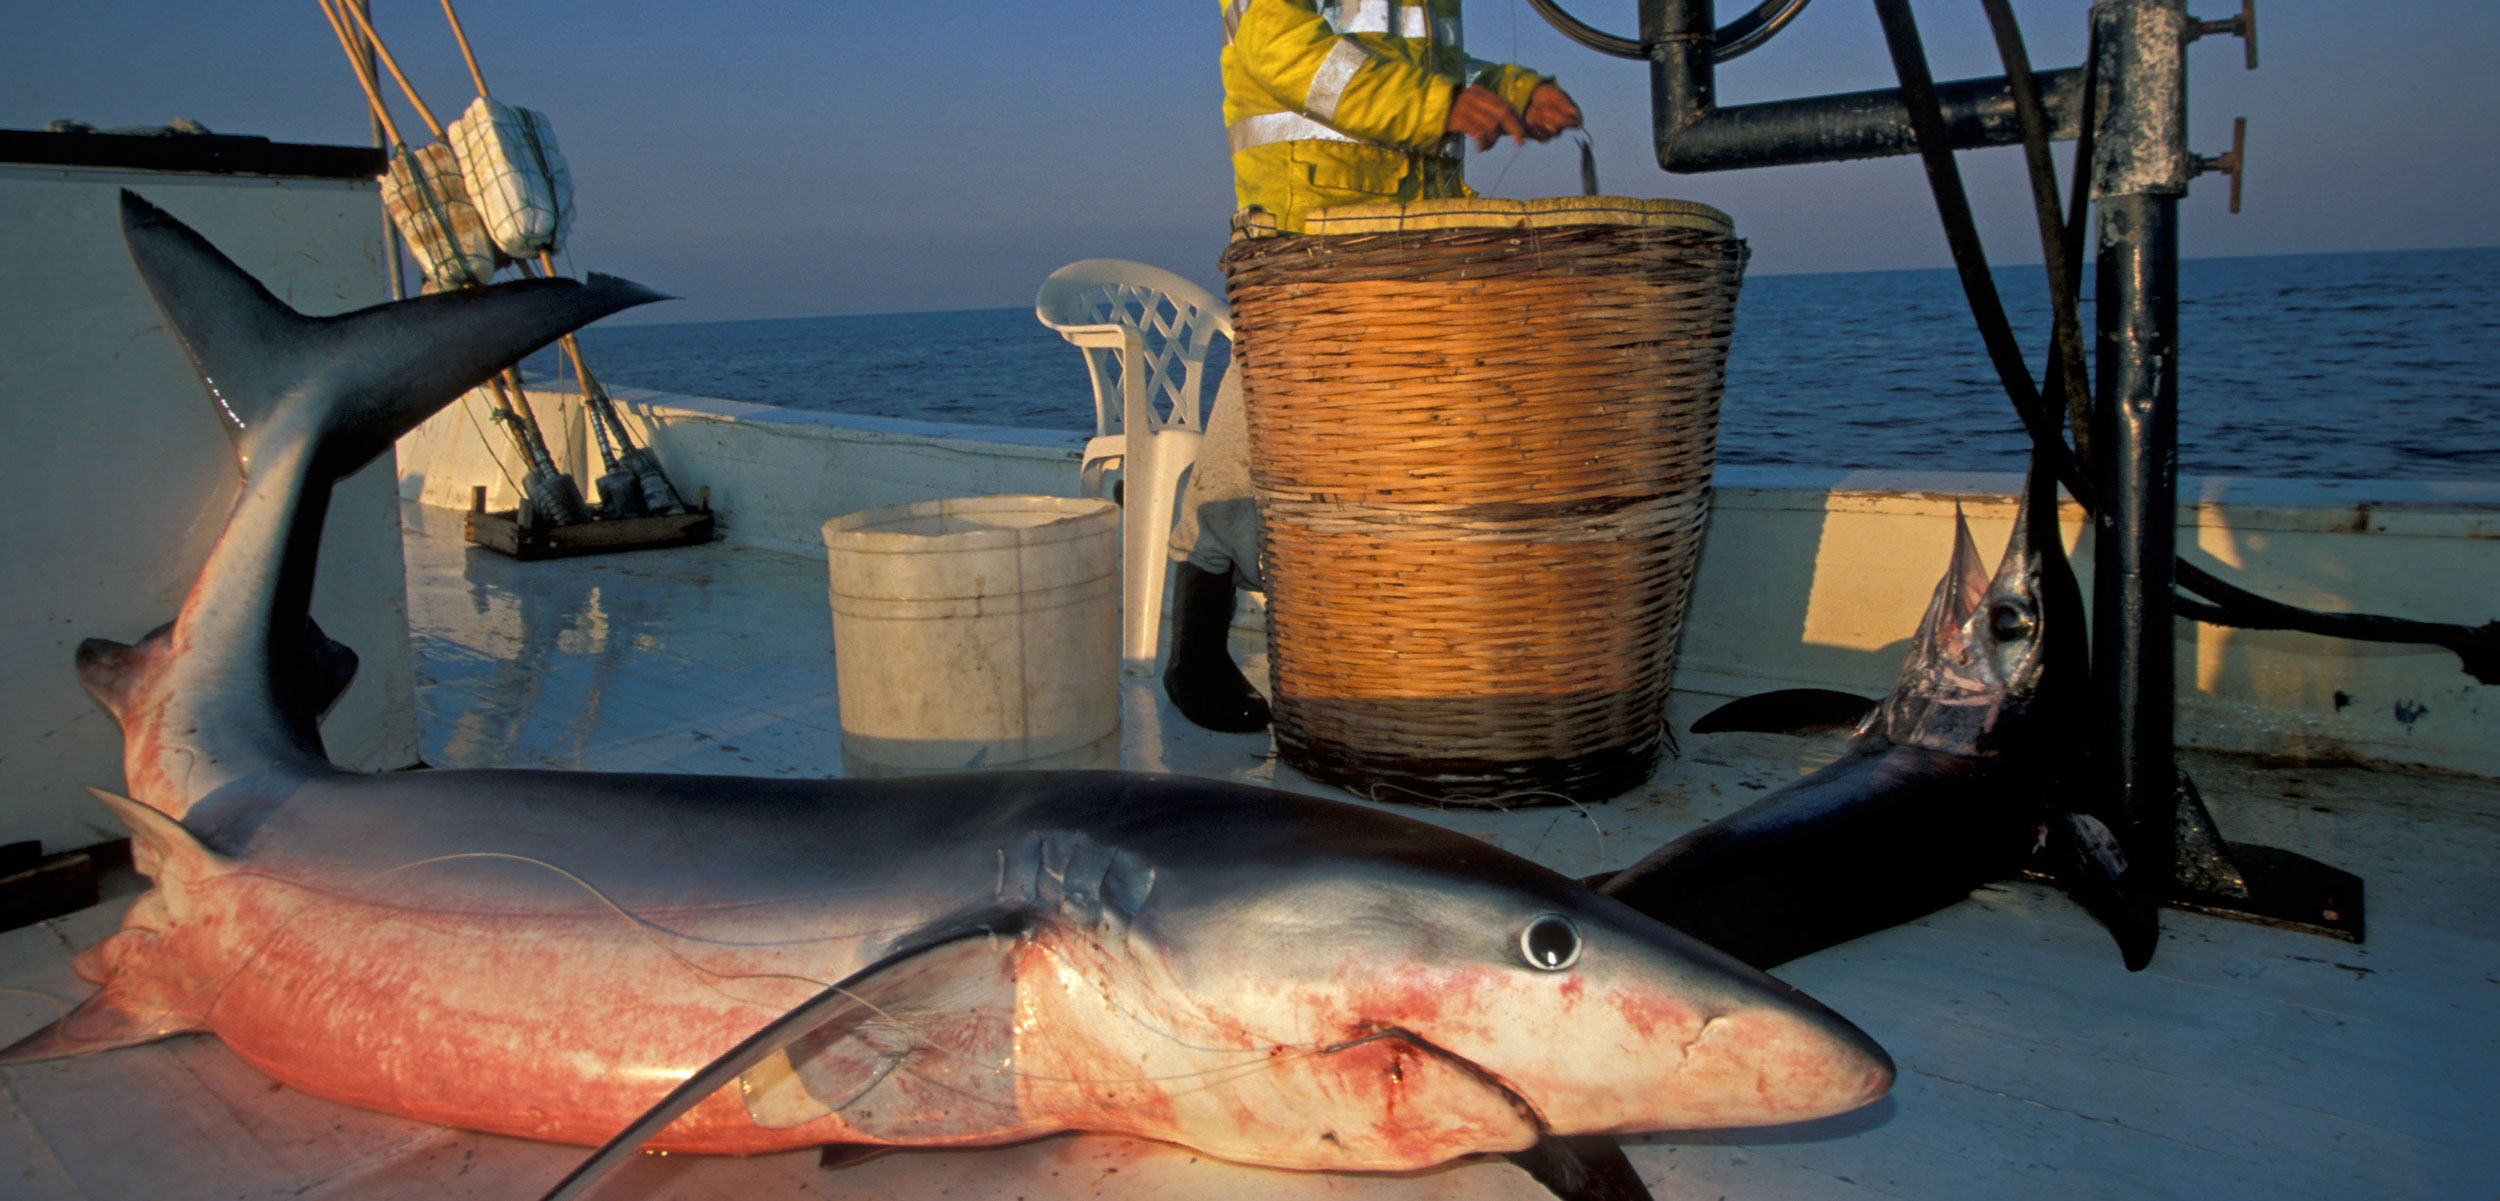 shark on deck of fishing boat